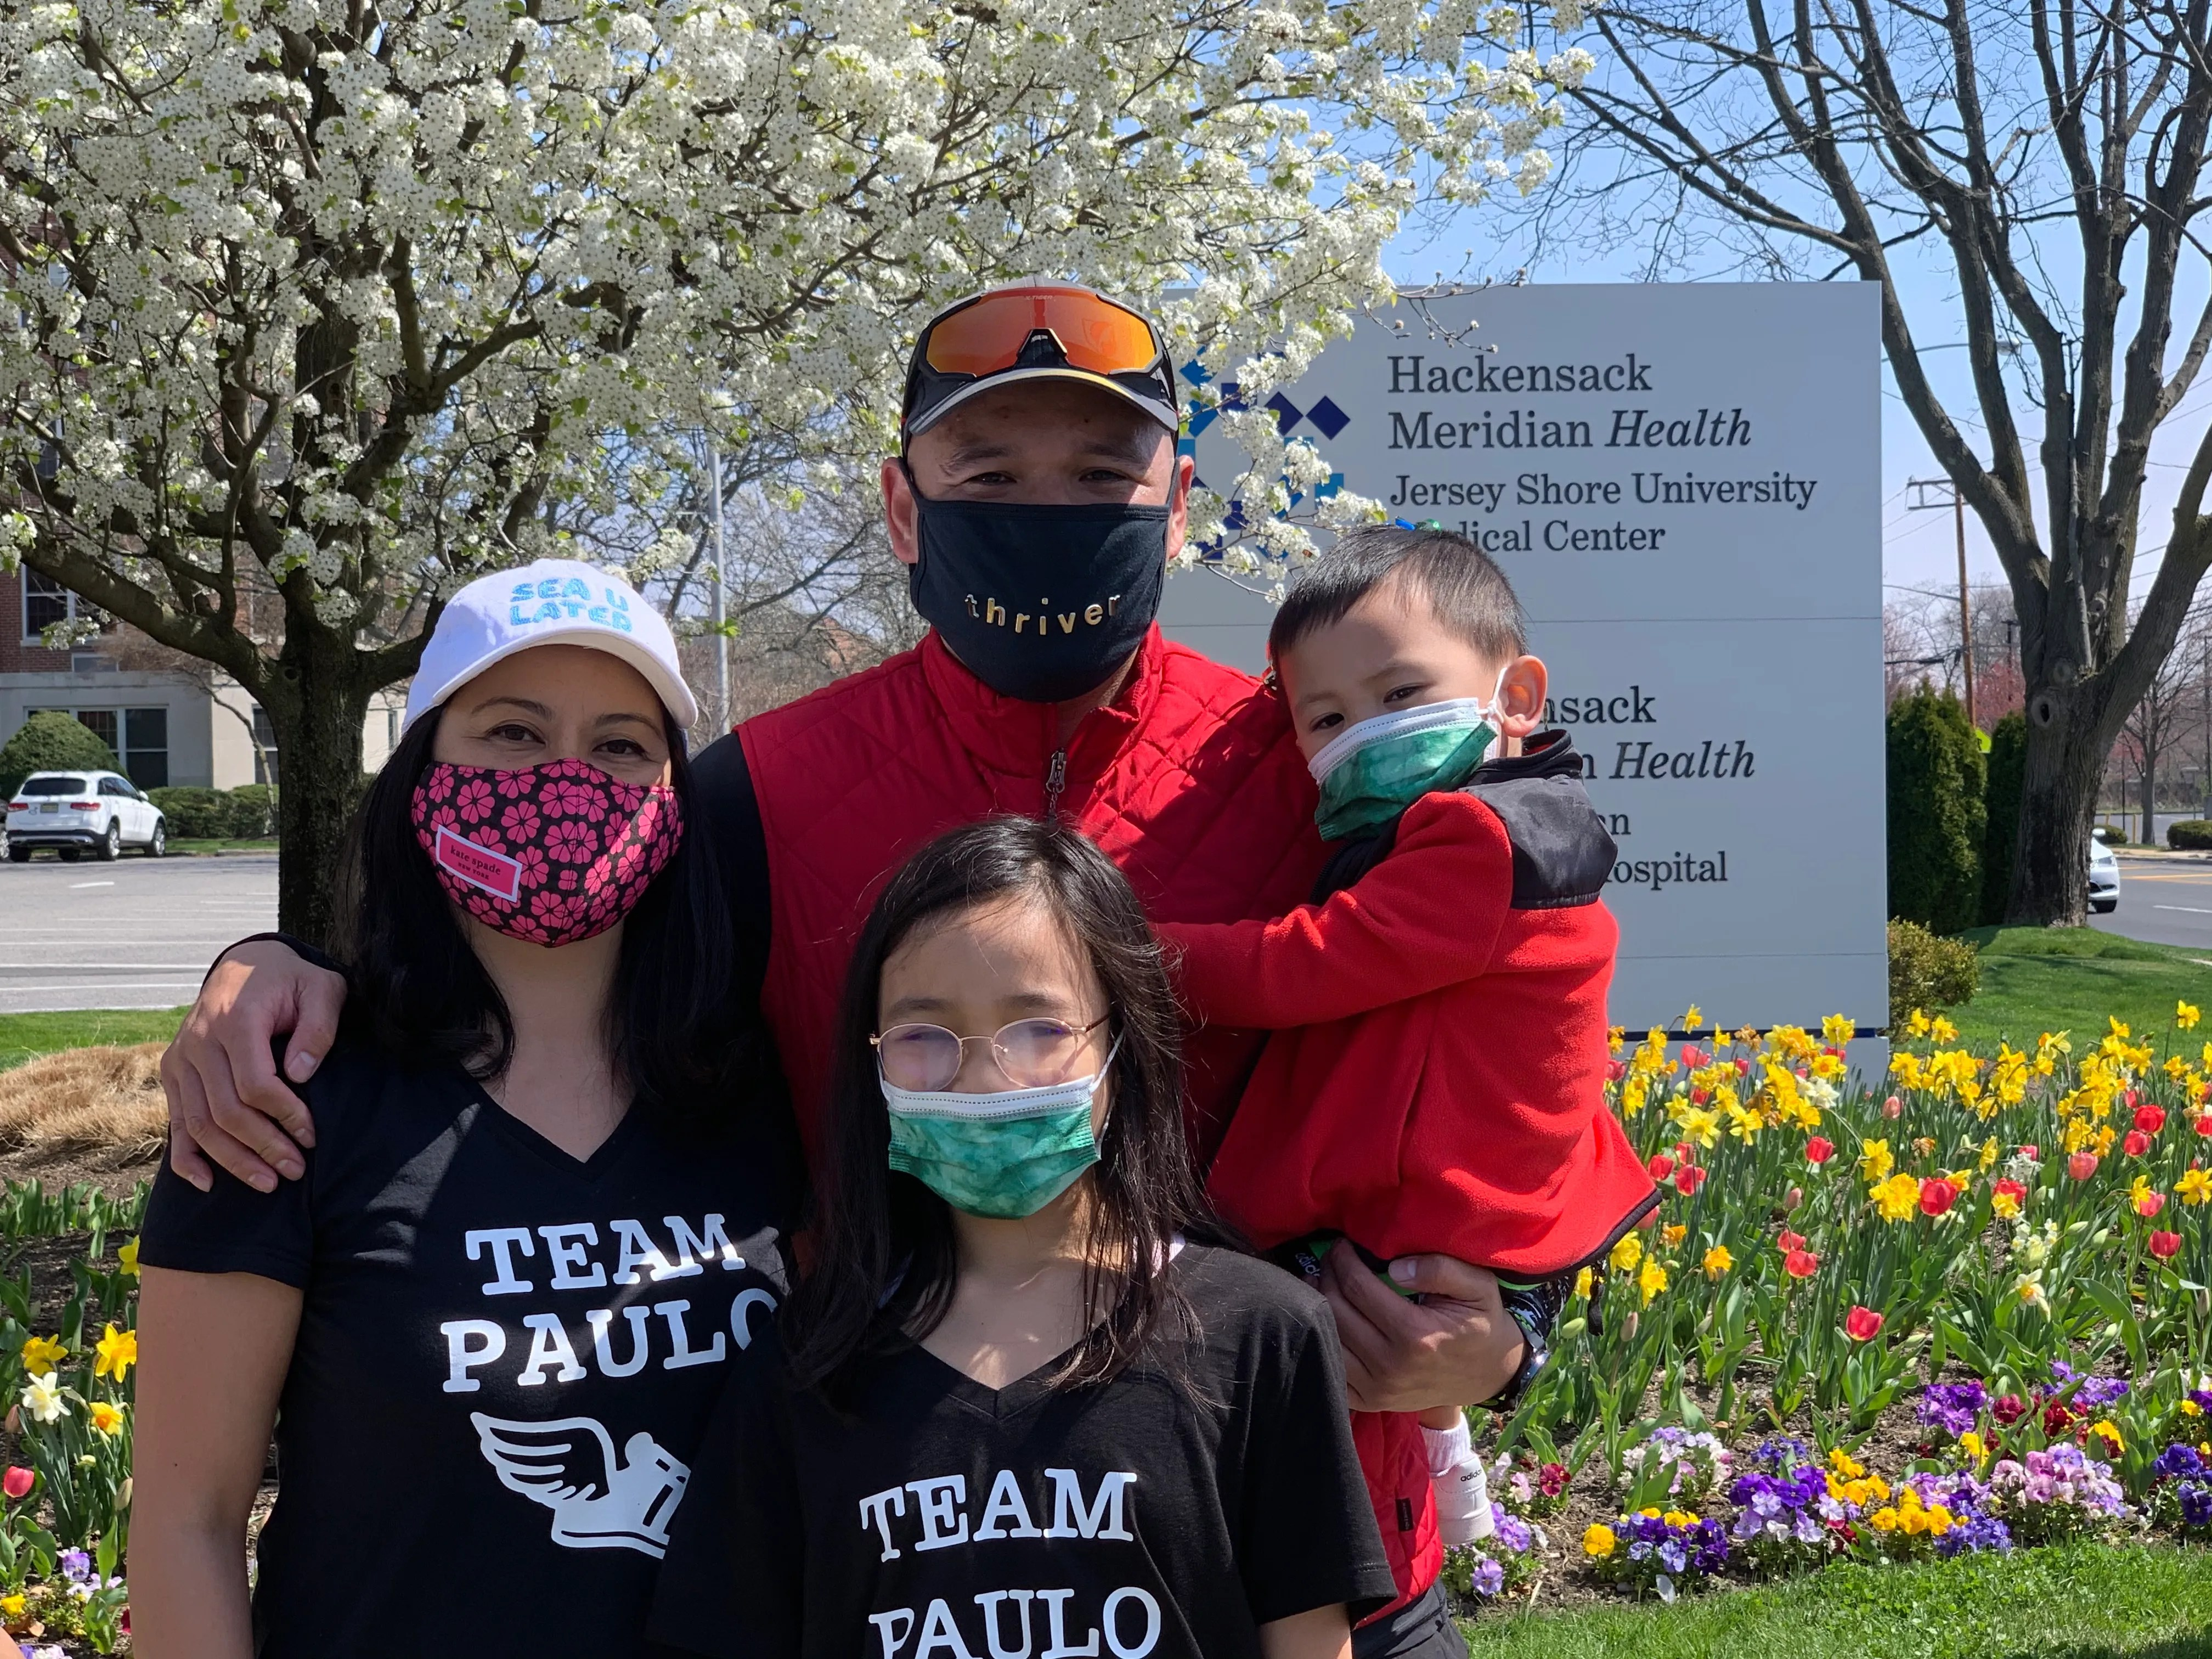 Paulo Santos (top center) with wife Christine Santos (left) and their children Ava (bottom center) and Paulo Jr. at Jersey Shore University Medical Center after Paulo's 20-mile run on Saturday.